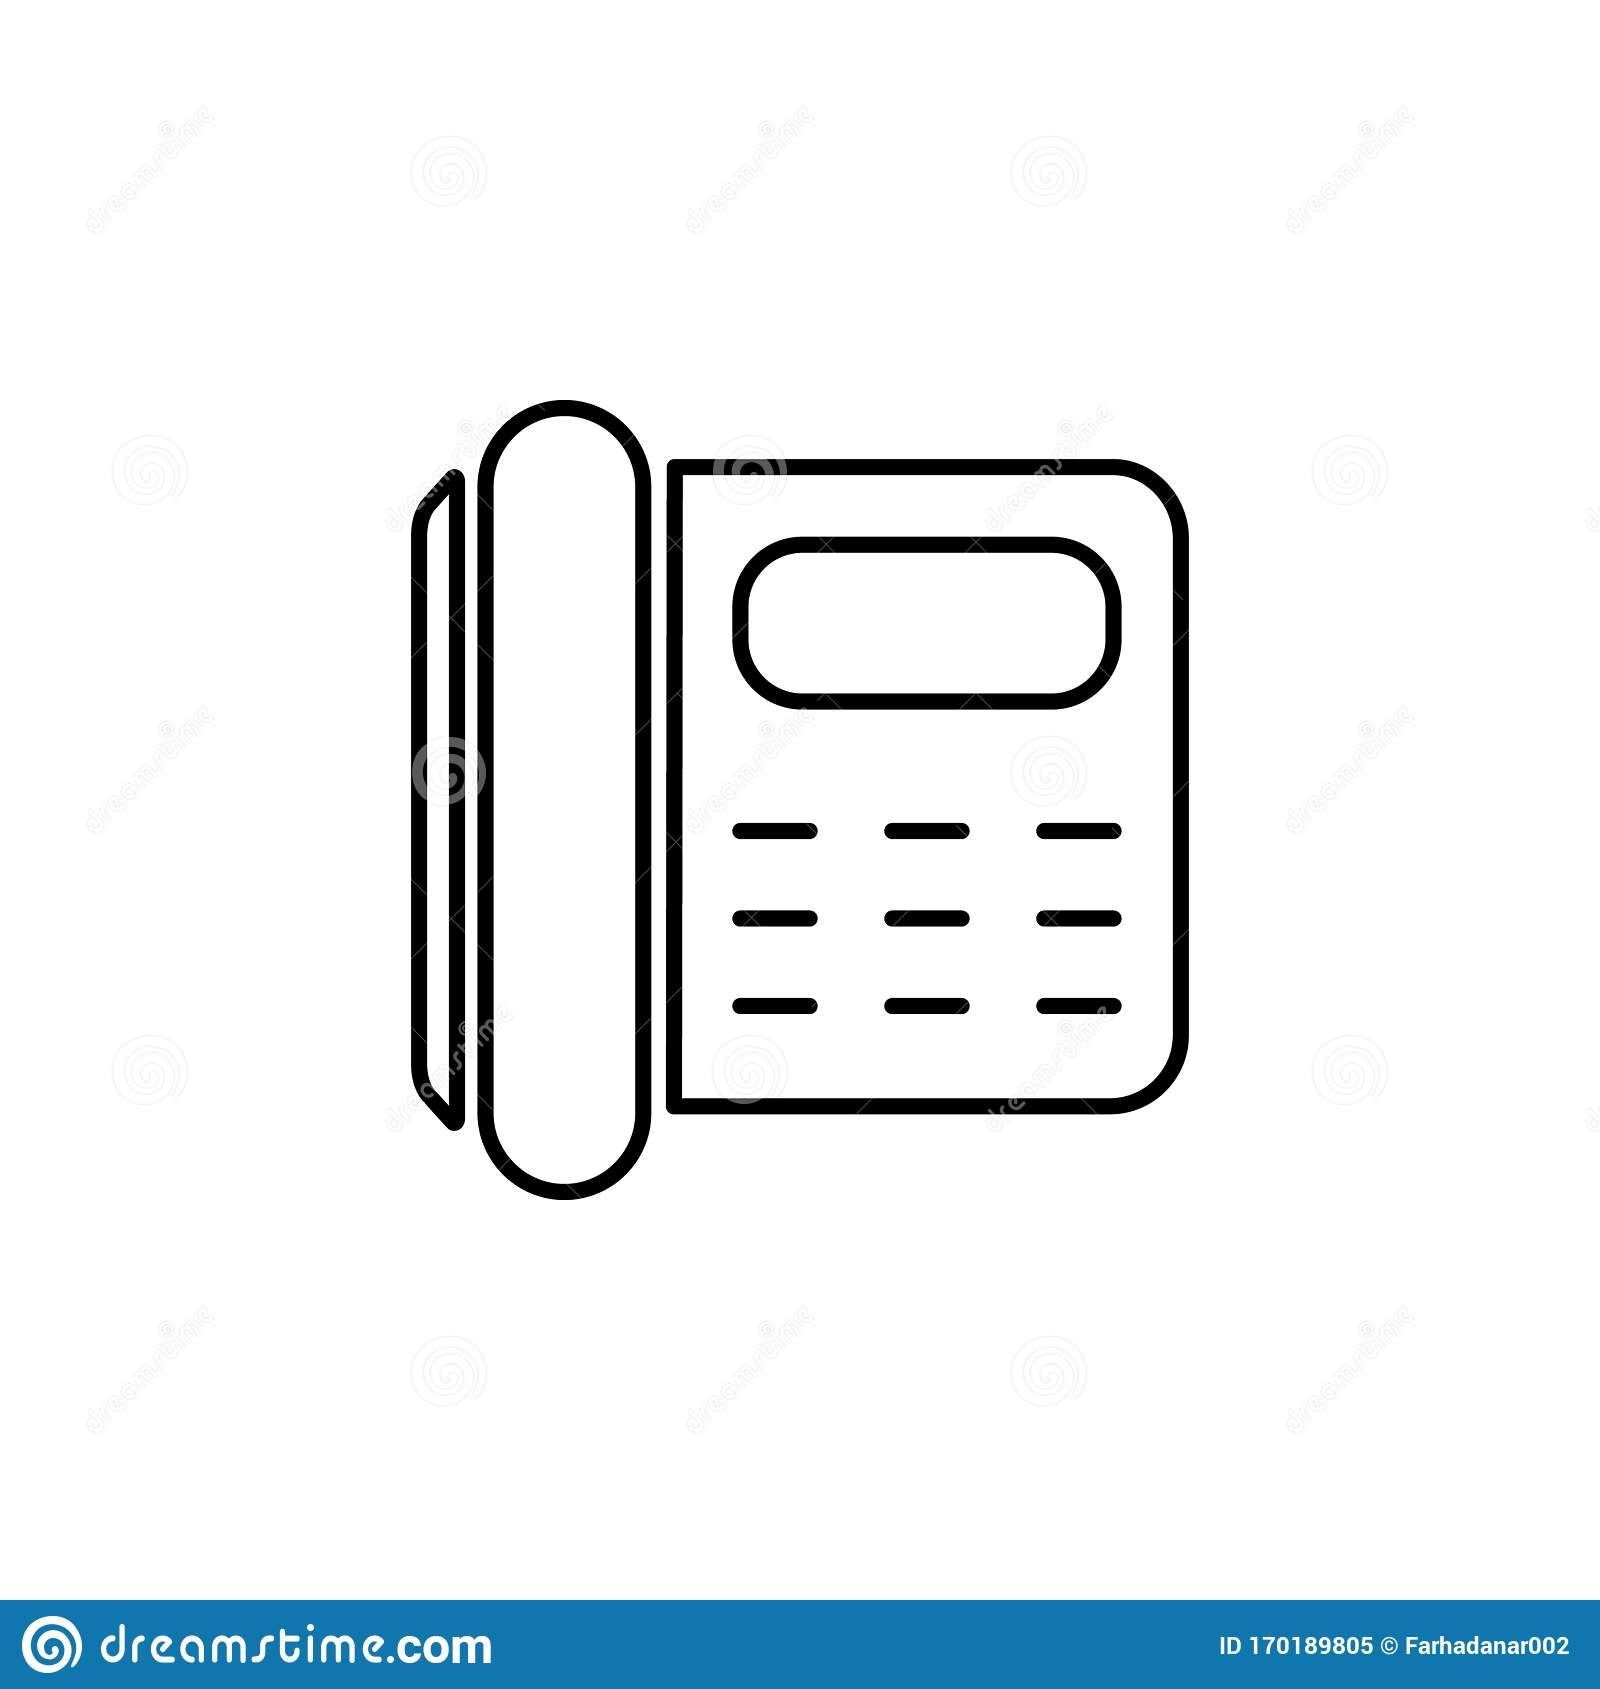 Phone Number Icon. Element Of Simple Travel Icon For ...